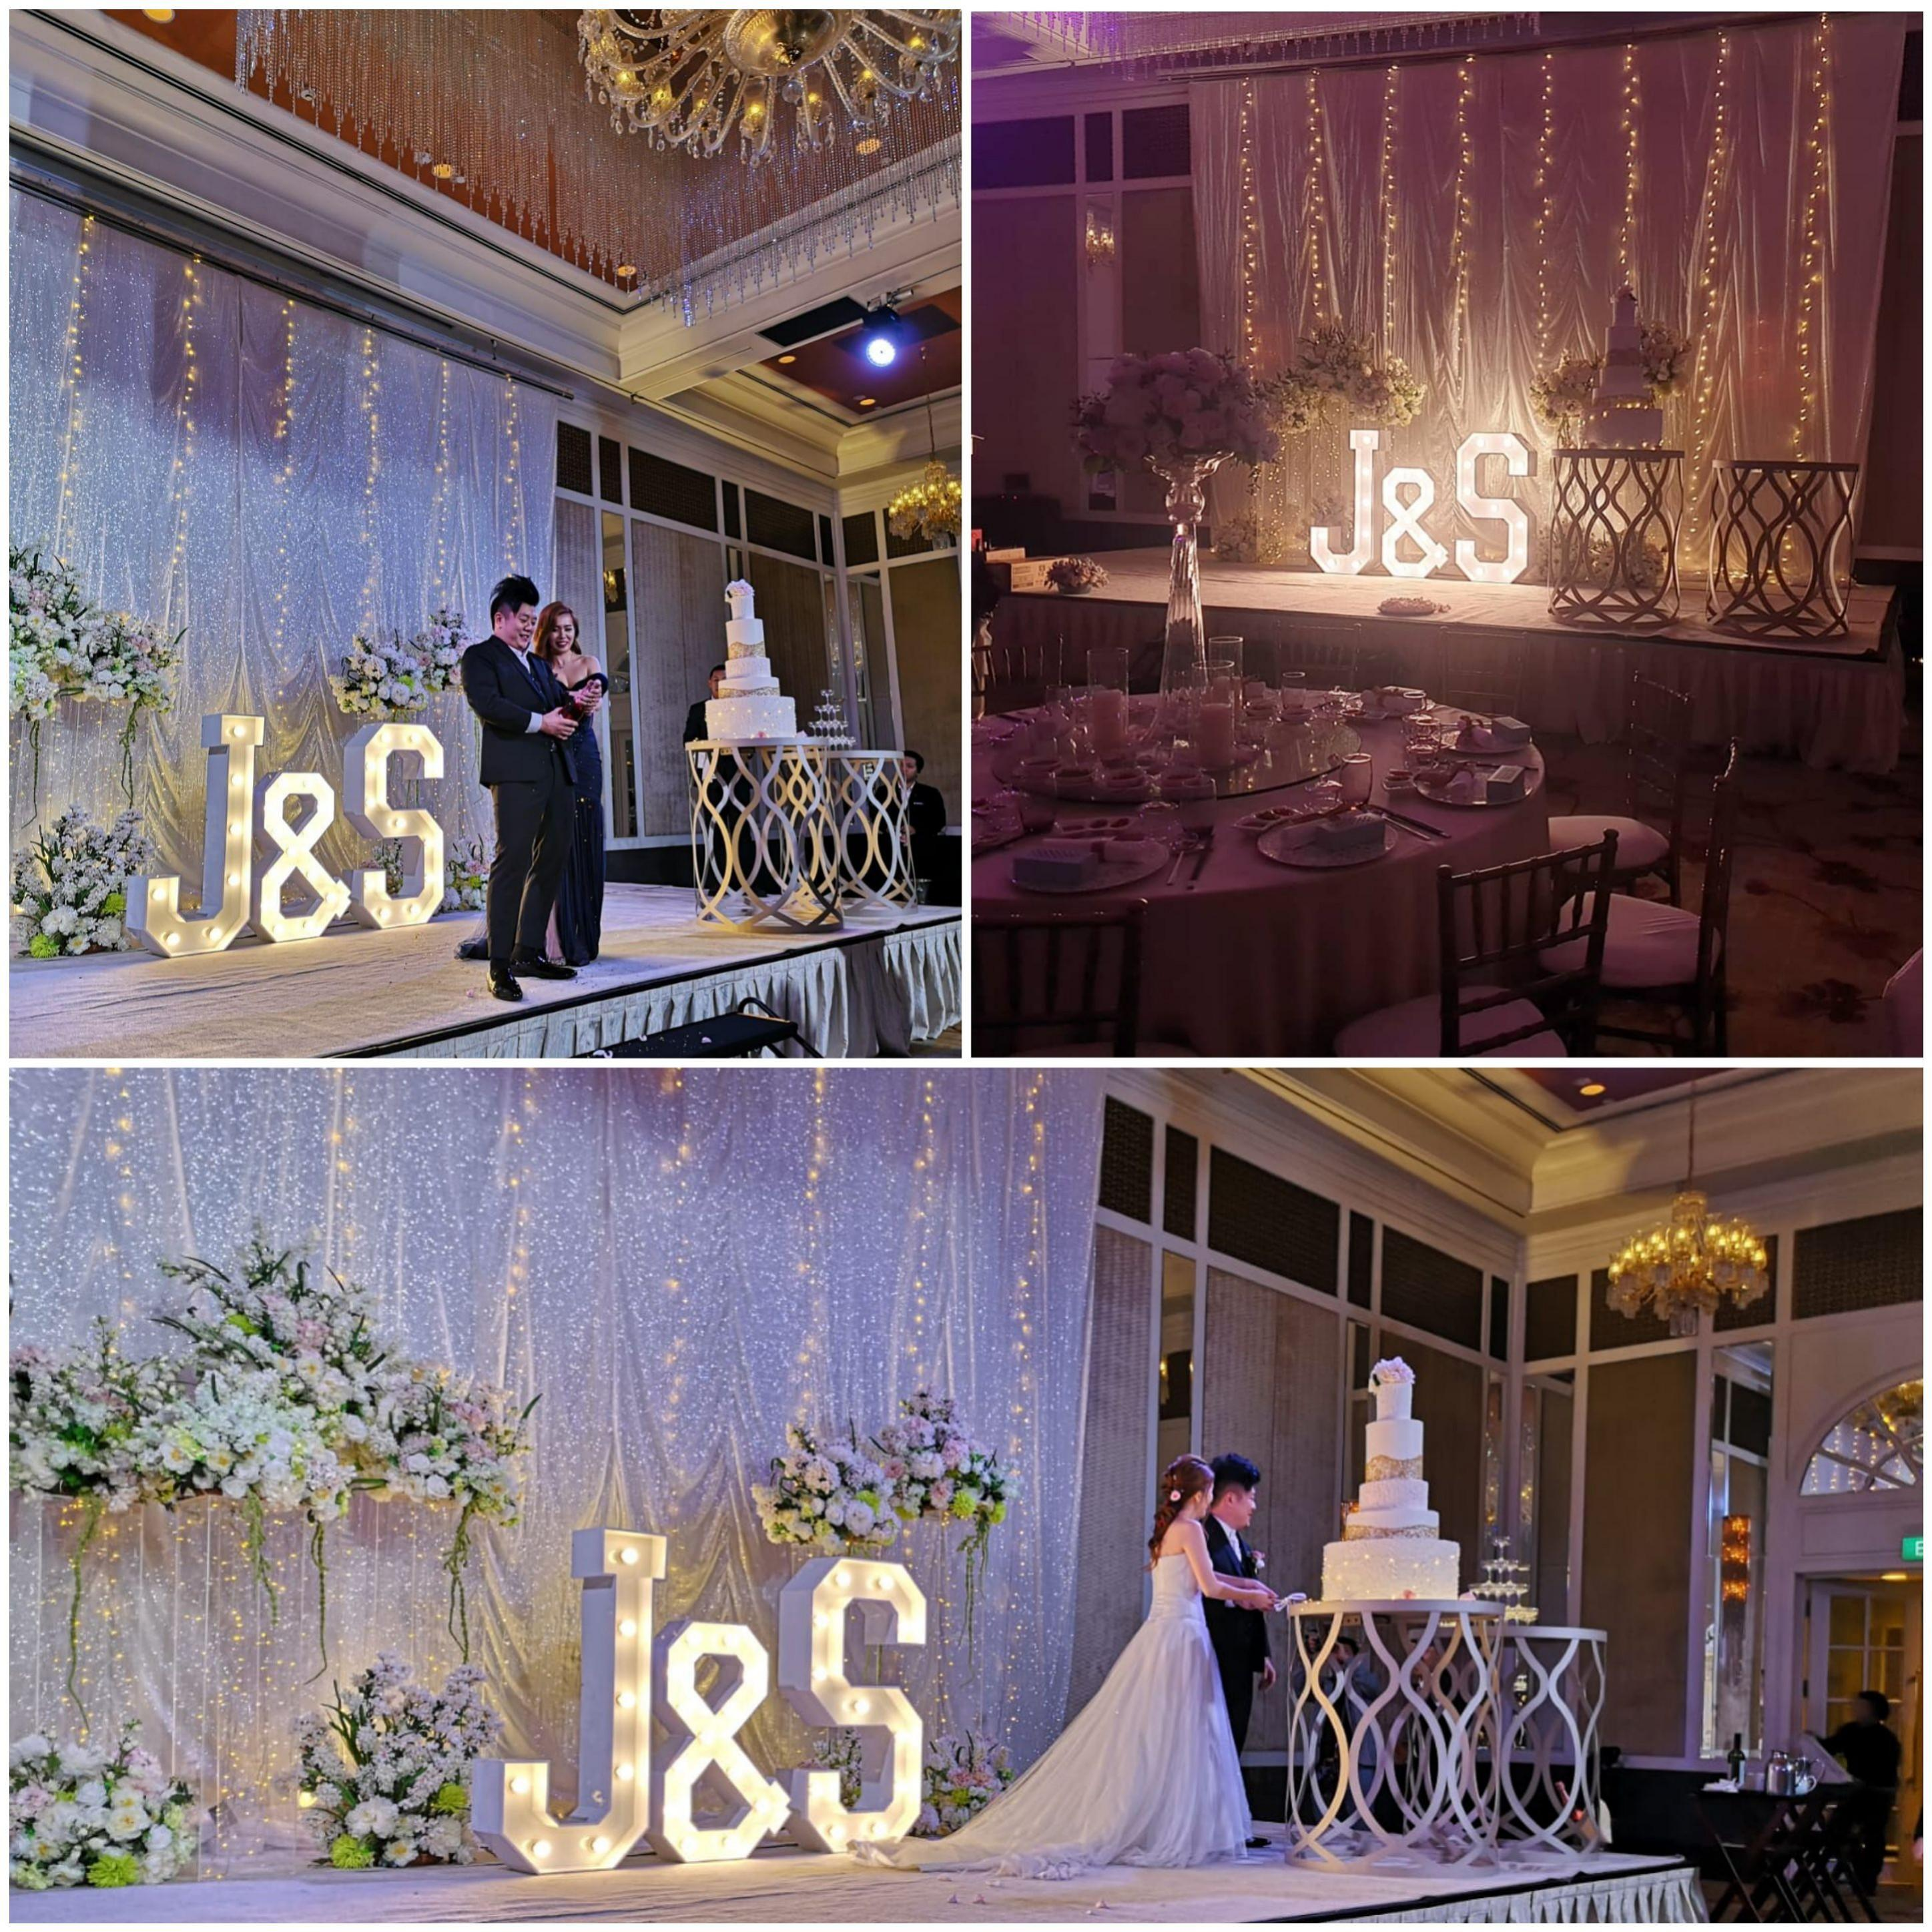 MARQUEE LIGHTS & LETTER TABLES for Events Wedding Decoration Birthday Dessert Table Corporate (RENT)